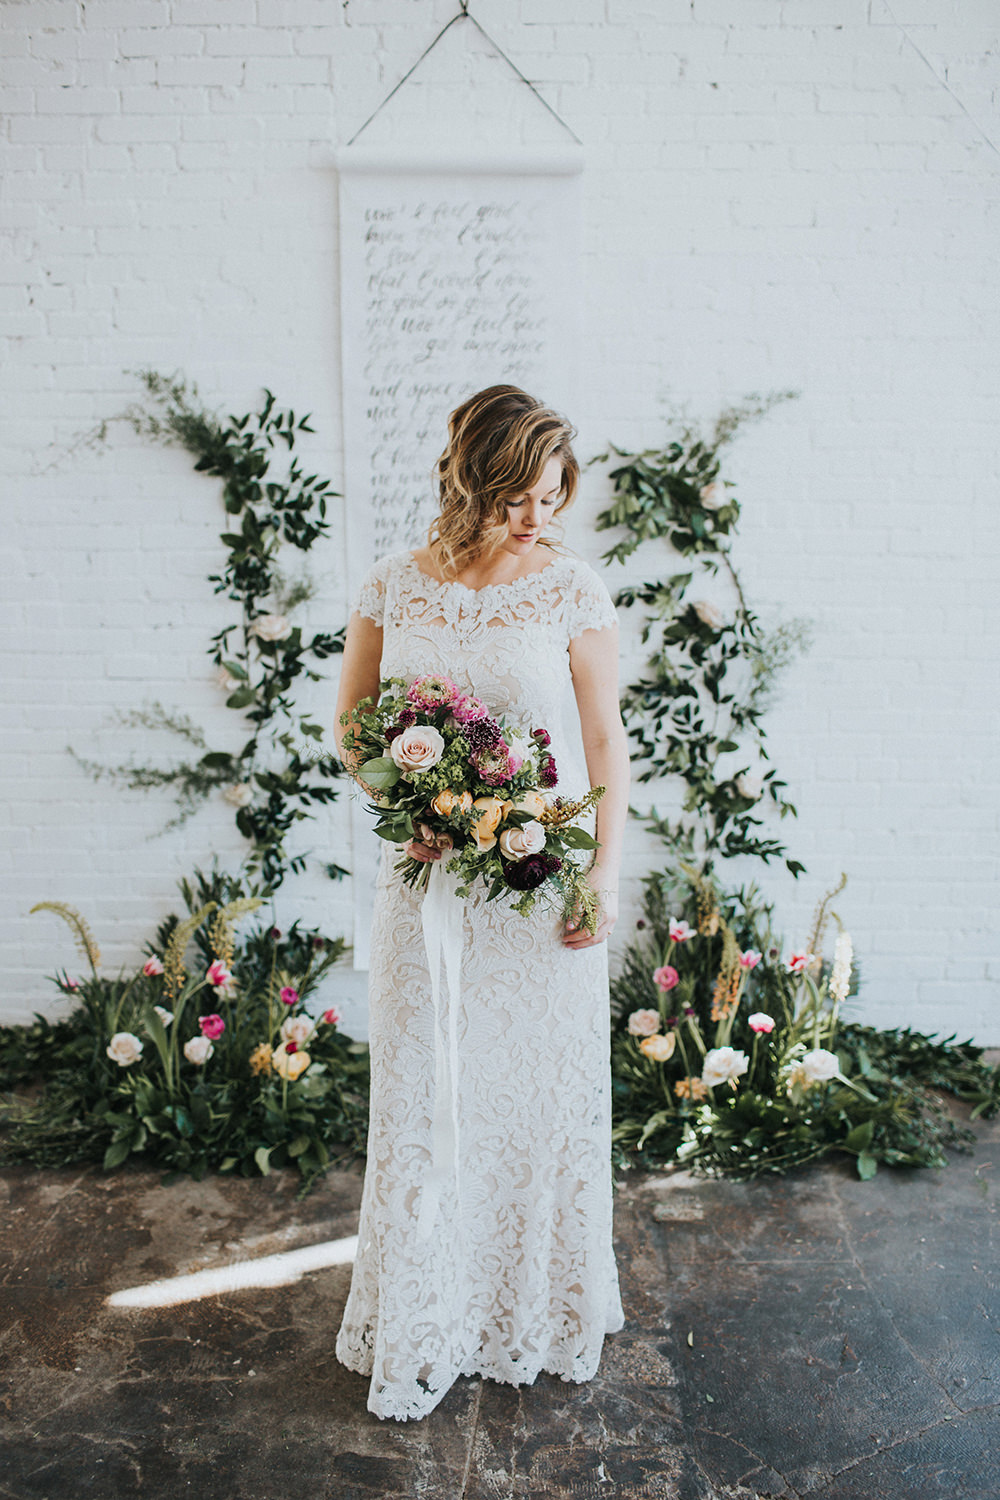 Modern Romantic Loft Wedding Inspiration - photo by Jacoby Photo and Design http://ruffledblog.com/modern-romantic-loft-wedding-inspiration